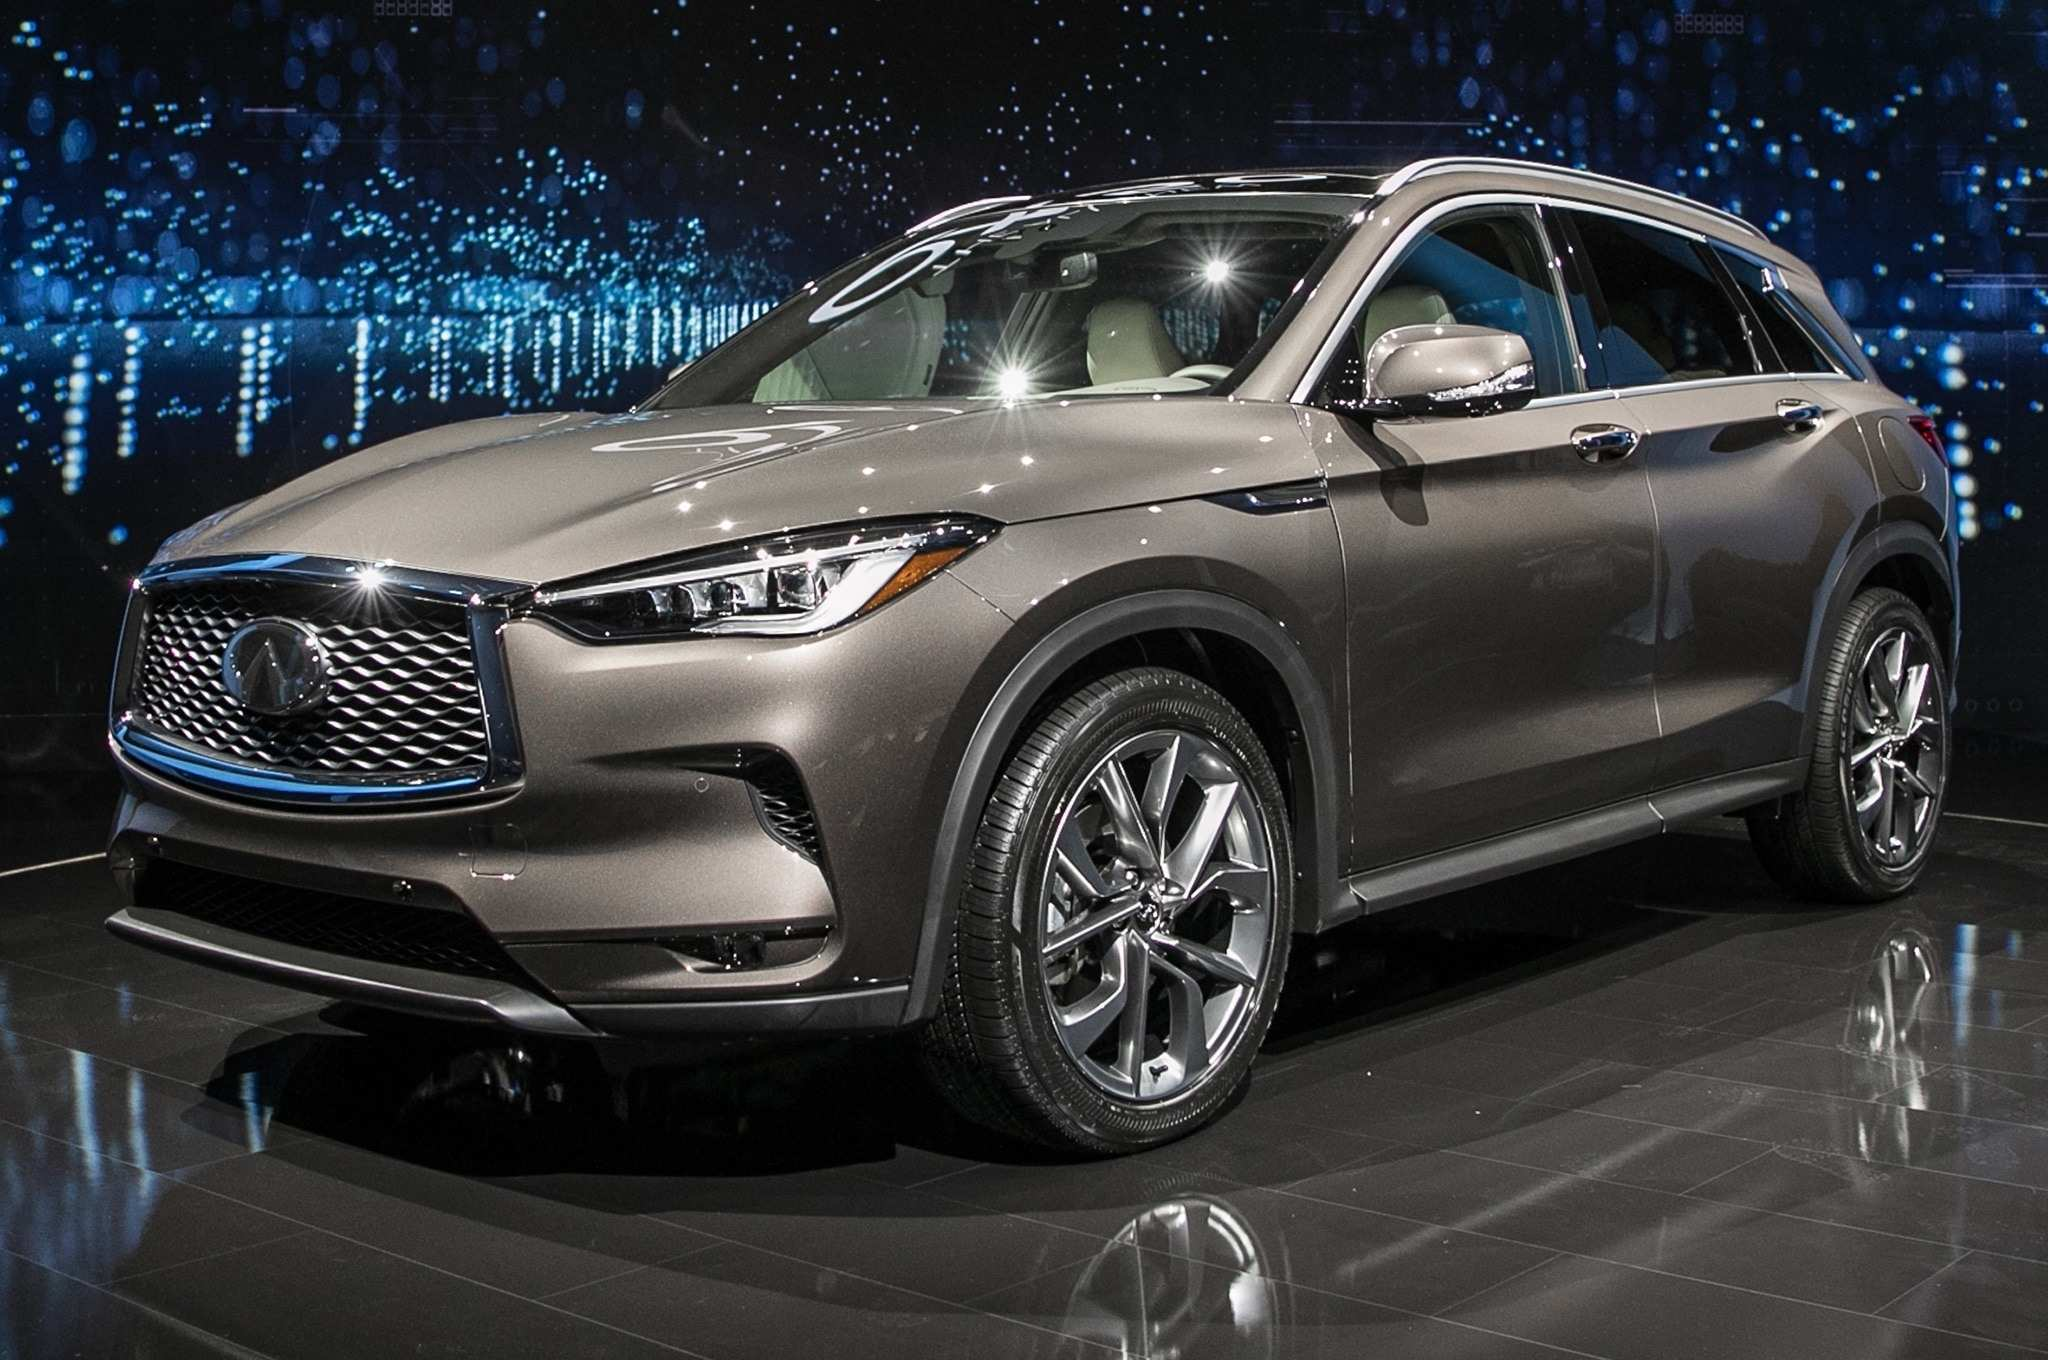 62 New 2019 Infiniti Qx50 Review Model with 2019 Infiniti Qx50 Review